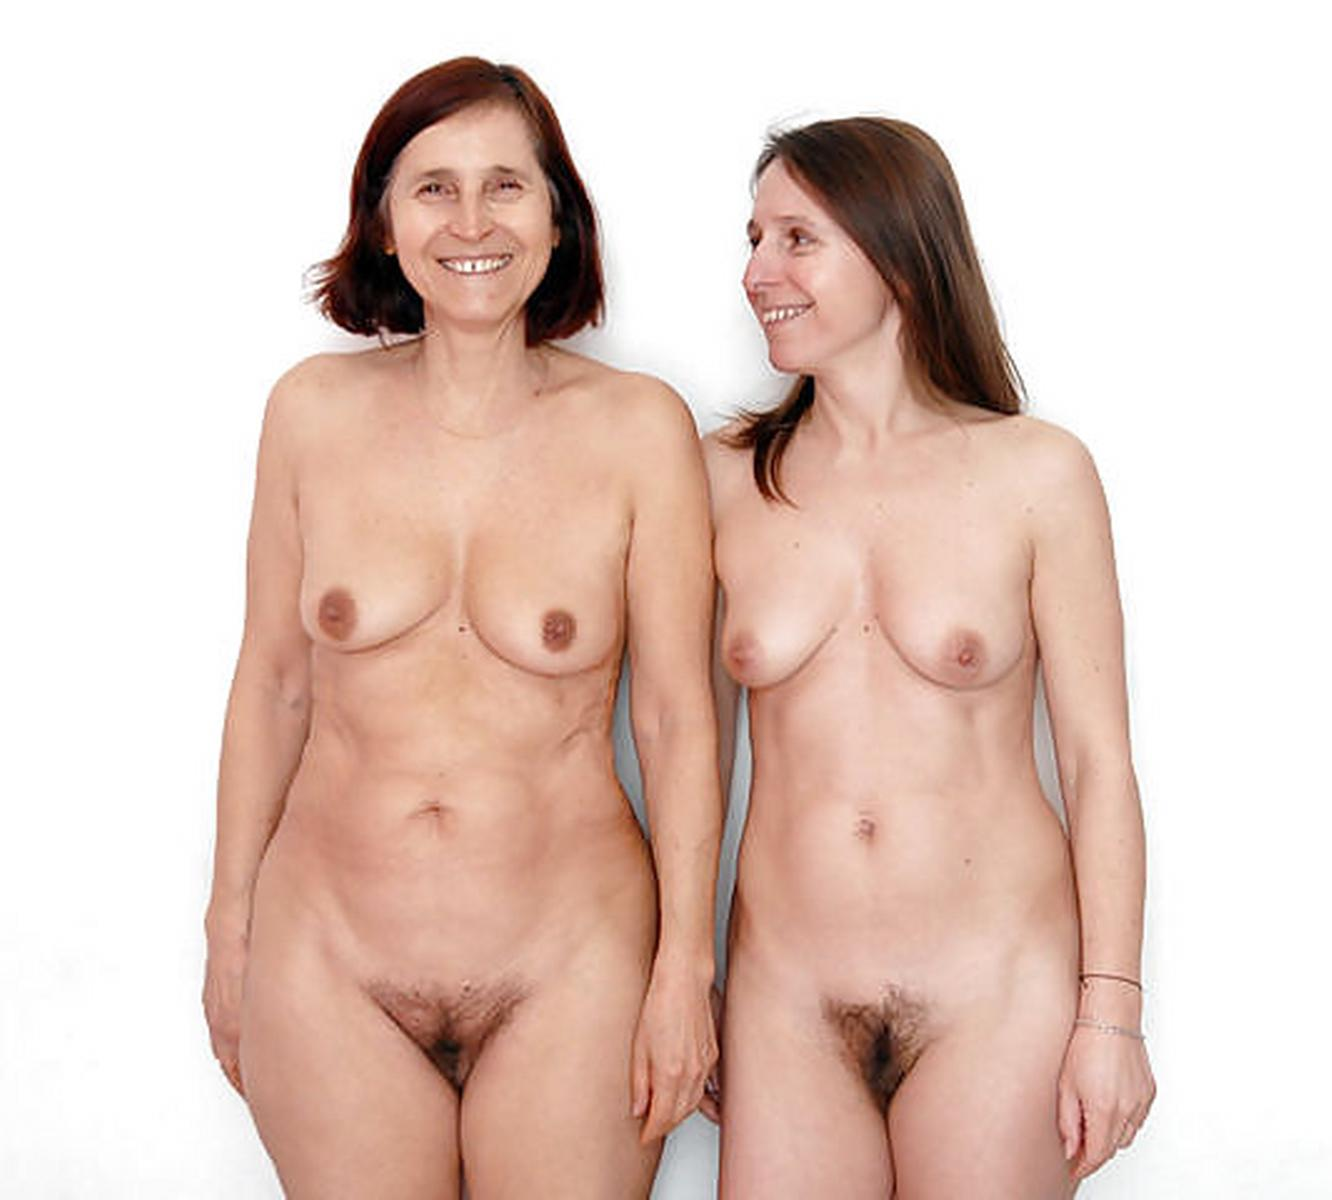 mother and daughter nude